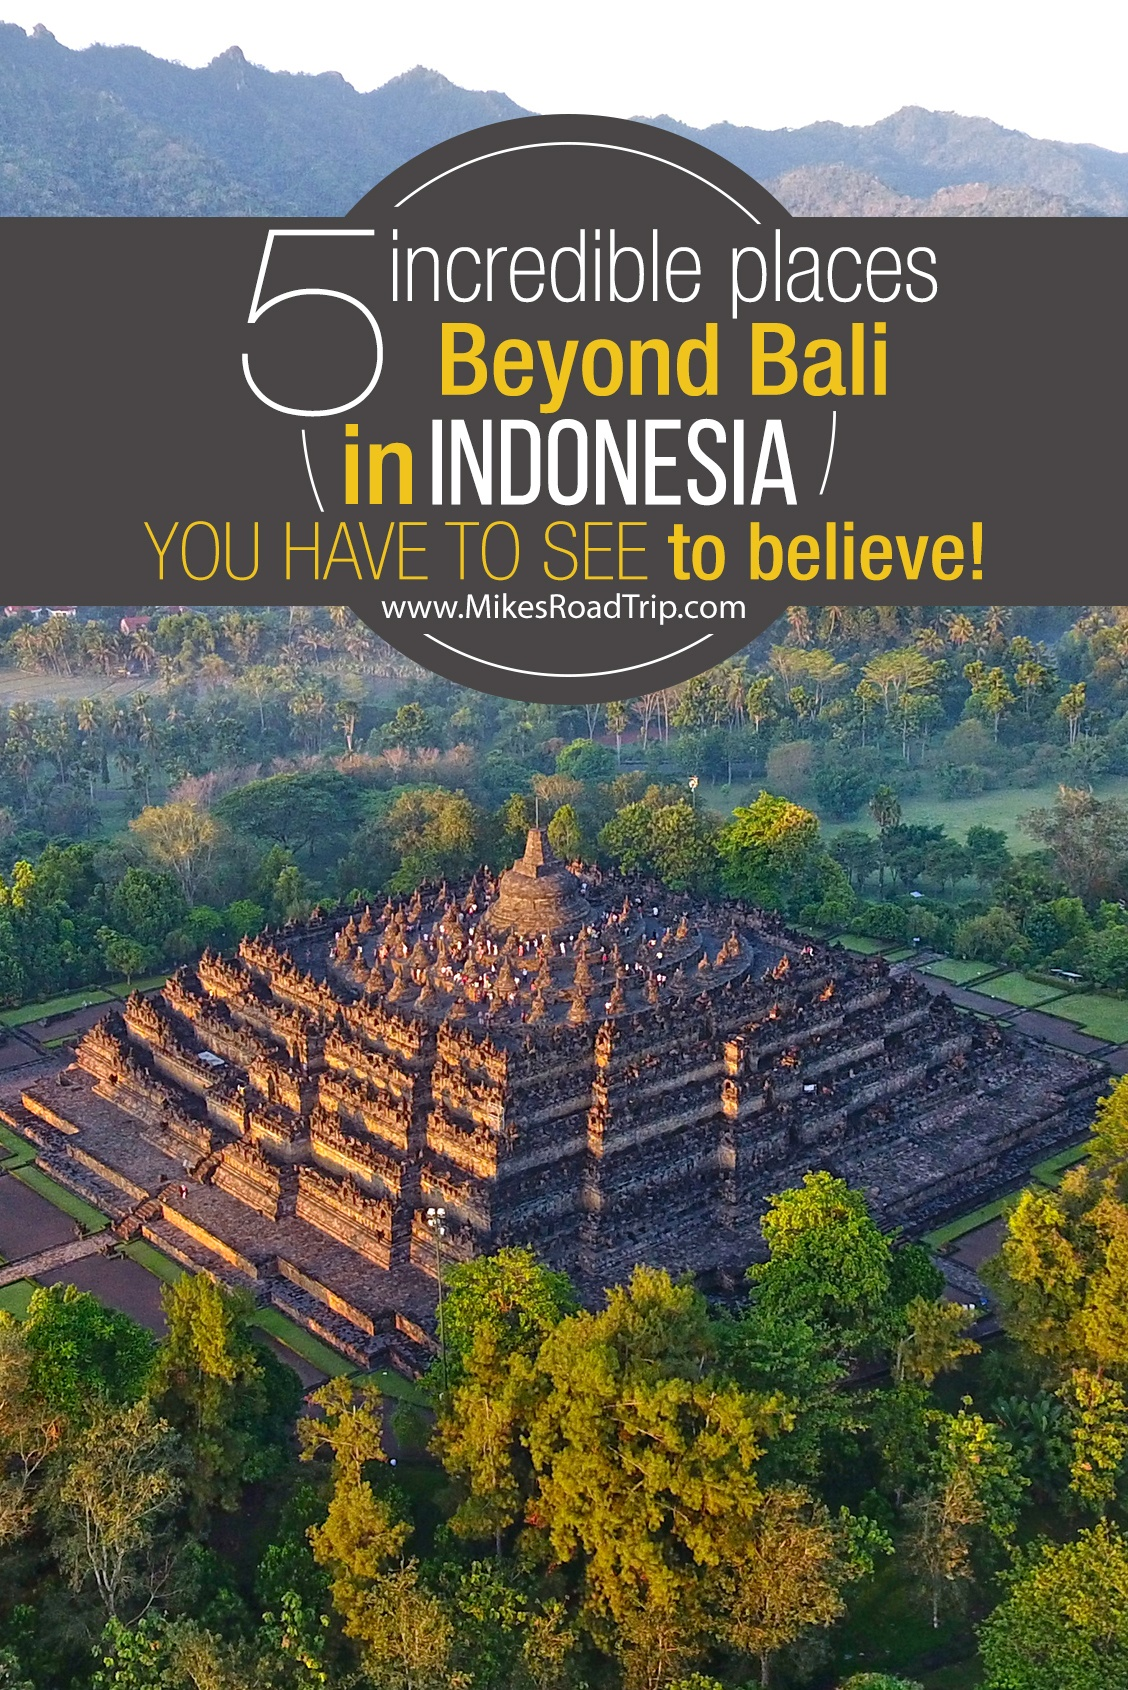 5 incredible places beyond Bali in Wonderful Indonesia by MikesRoadTrip.com